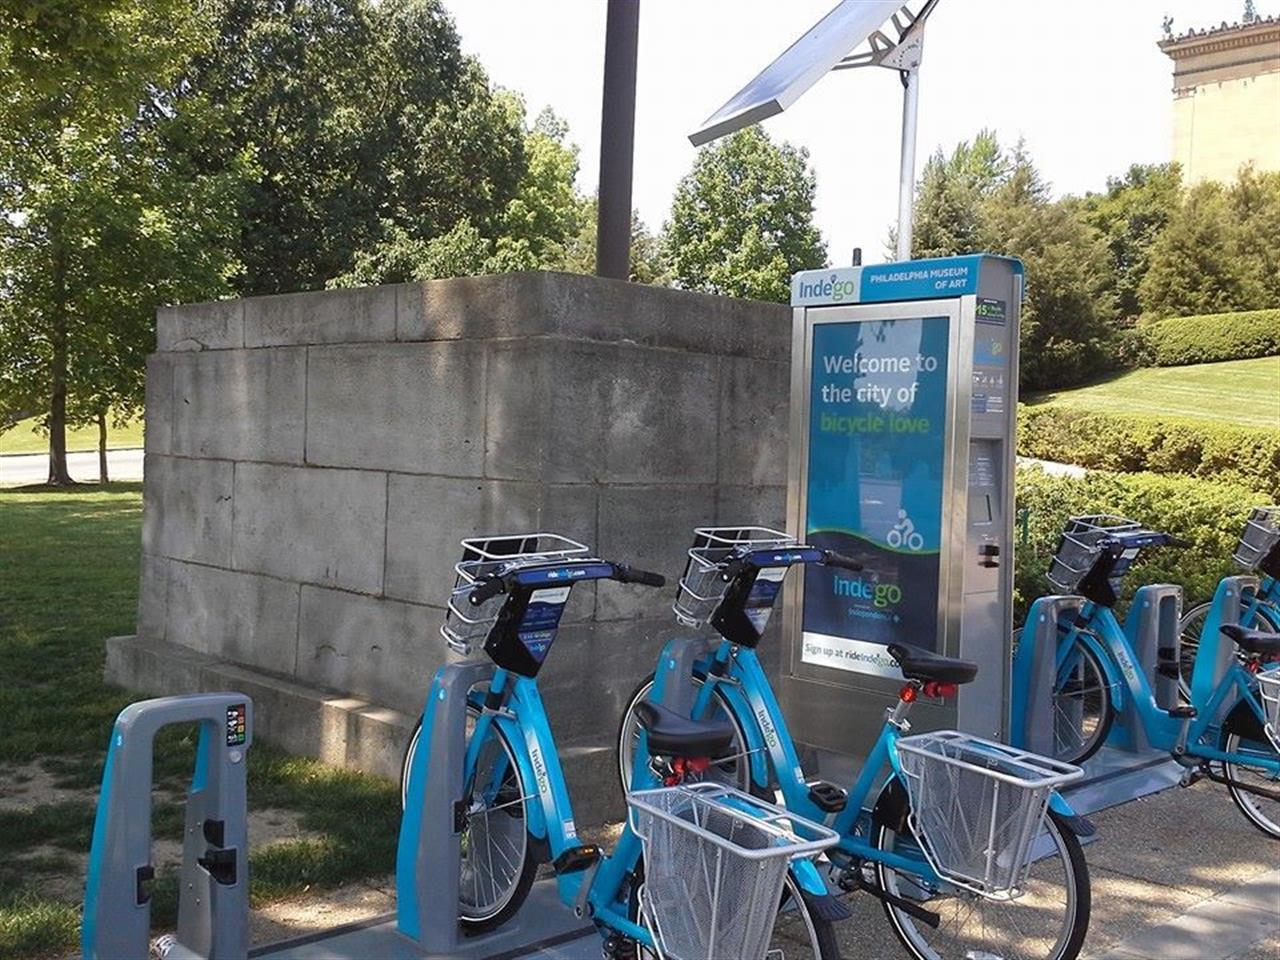 Indego - Philadelphia Bike Share Program